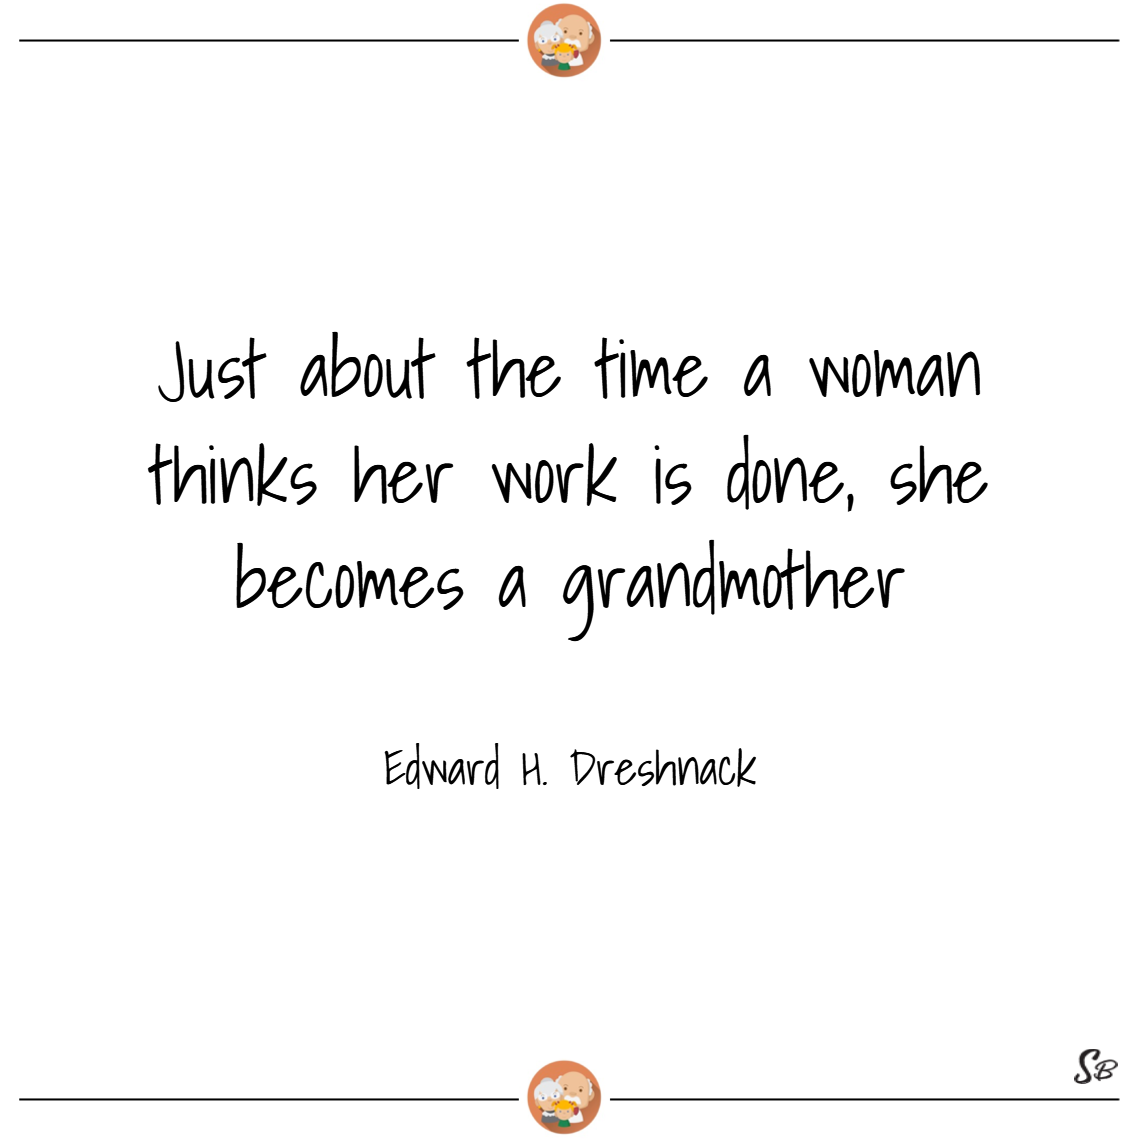 Just about the time a woman thinks her work is done, she becomes a grandmother. – edward h. dreschnack